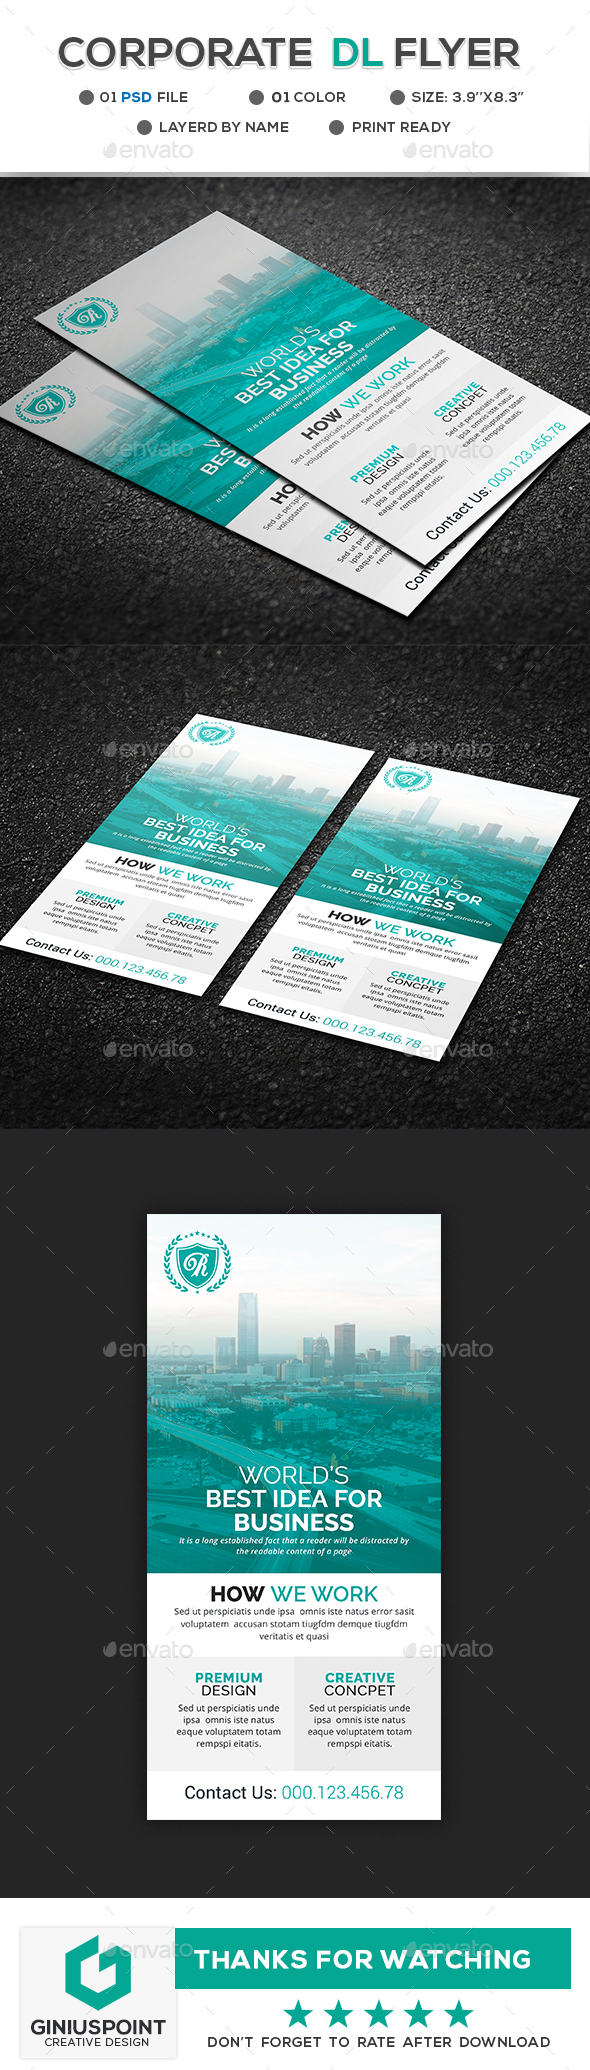 GraphicRiver Corporate DL Flyer 21149190